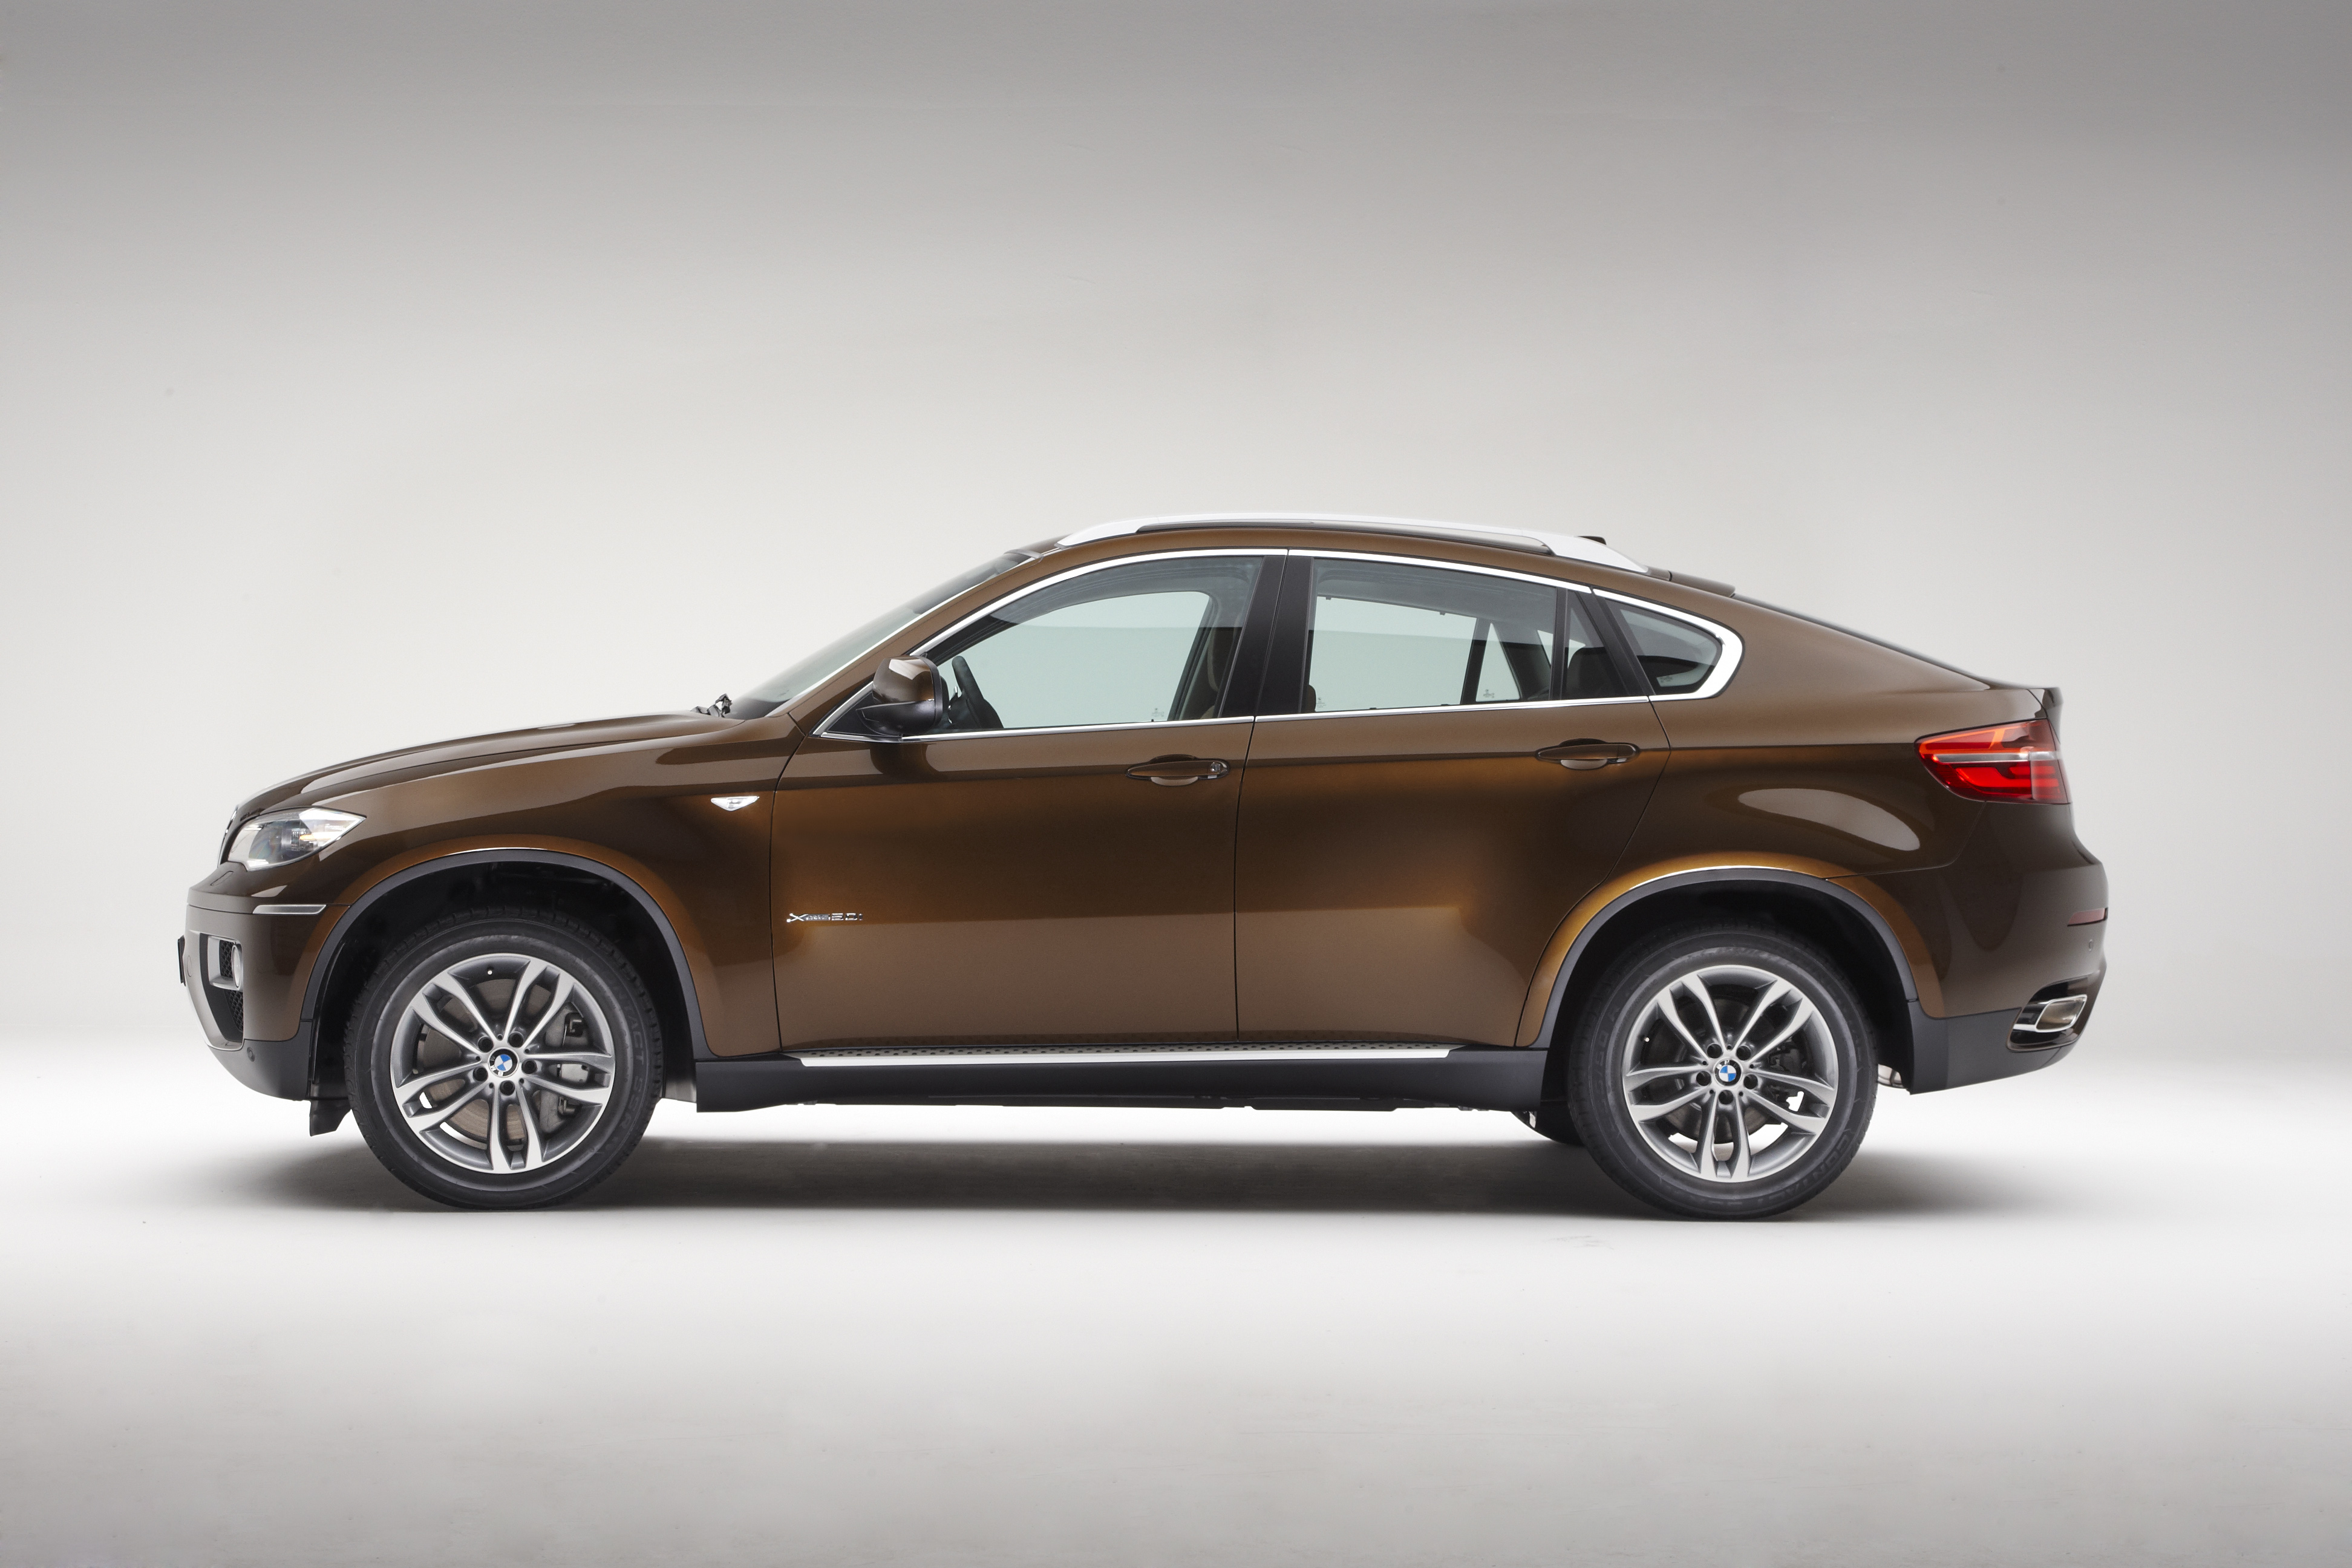 Mercedes Benz Of Memphis >> 2014 BMW X6 Review, Ratings, Specs, Prices, and Photos - The Car Connection